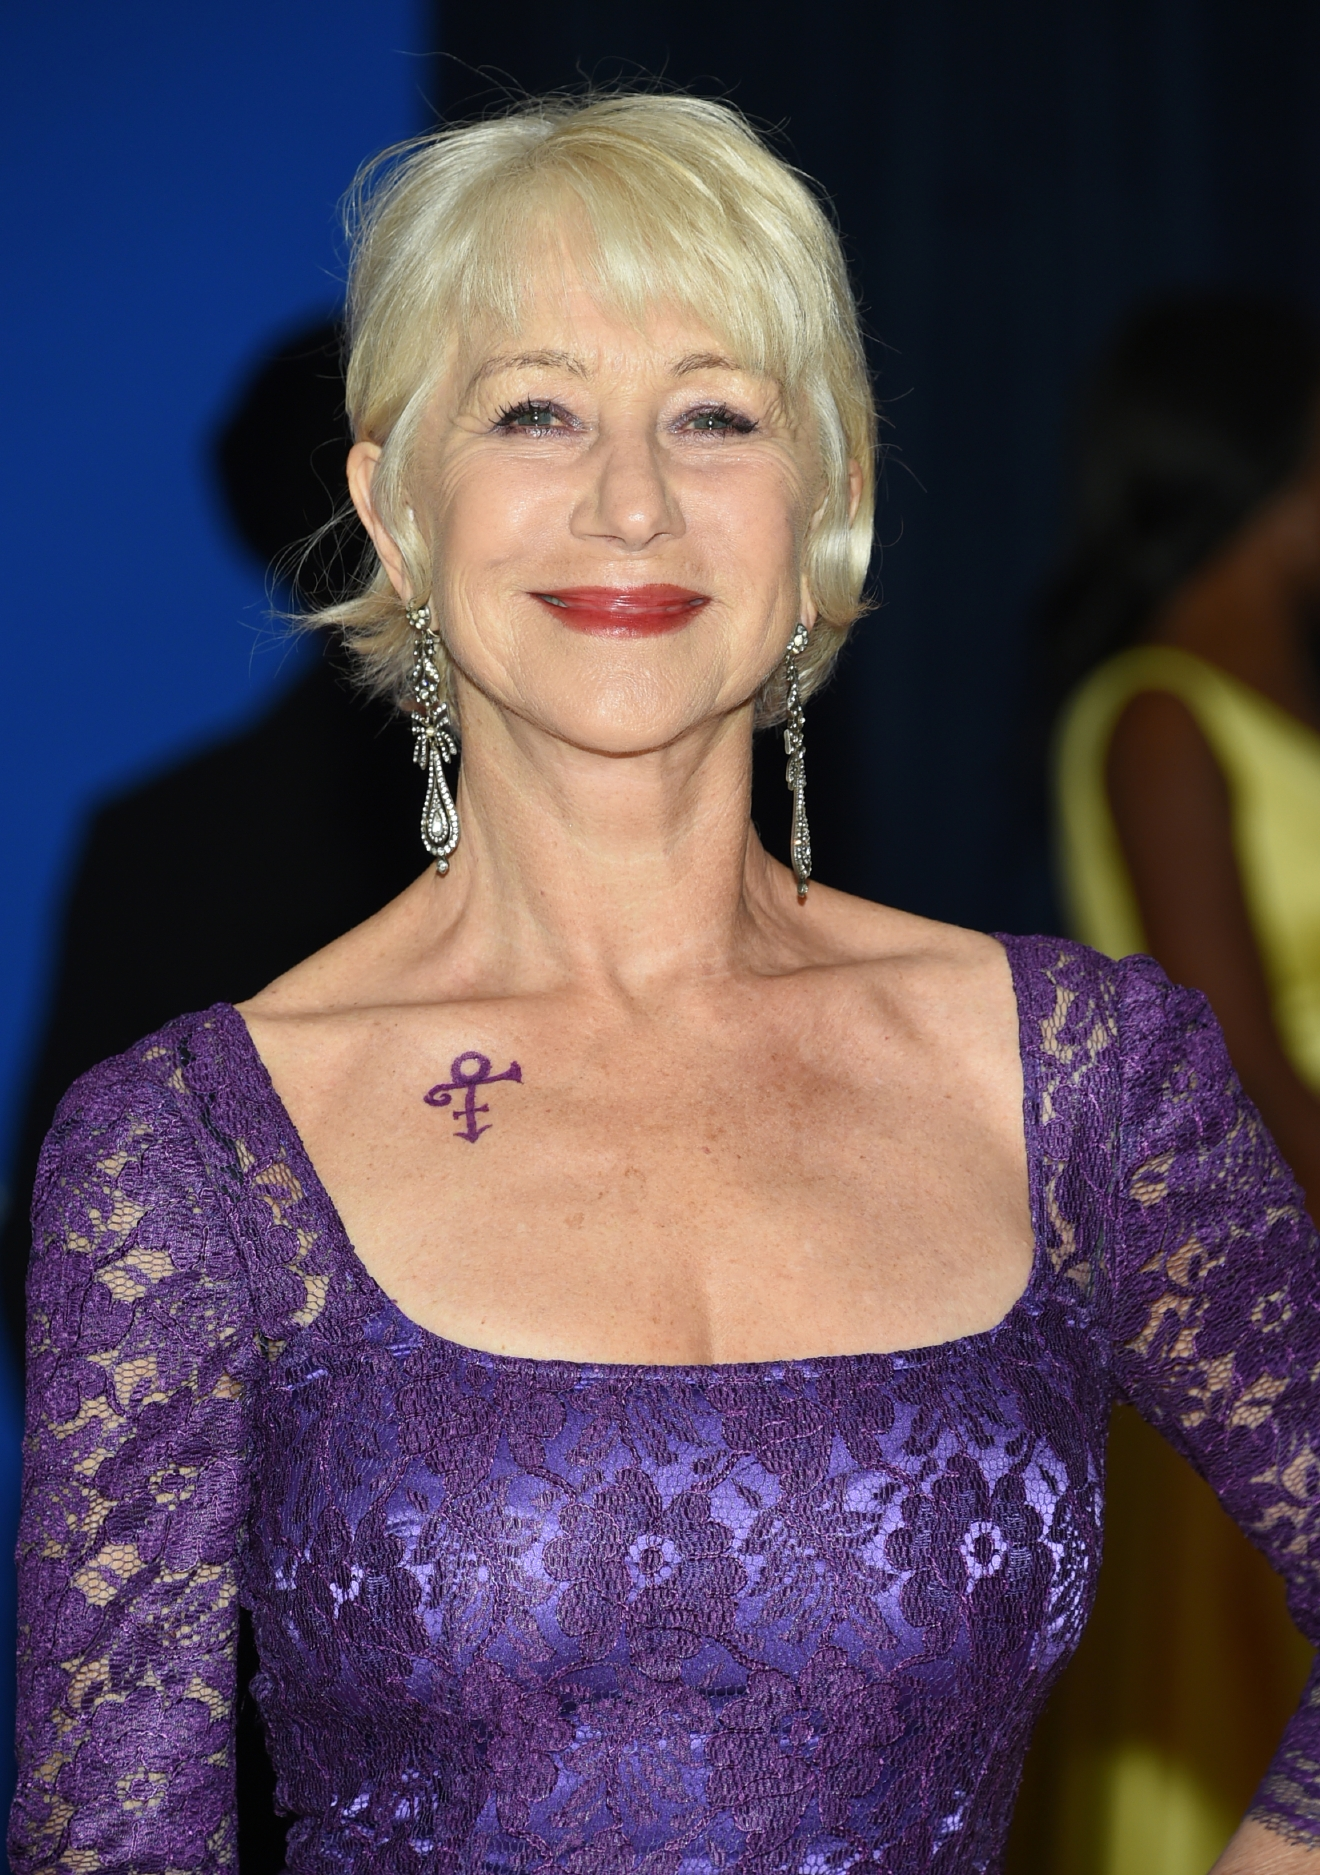 Helen Mirren arrives at the White House Correspondents' Association Dinner at the Washington Hilton Hotel, Saturday, April 30, 2016, in Washington. (Photo by Evan Agostini/Invision/AP)